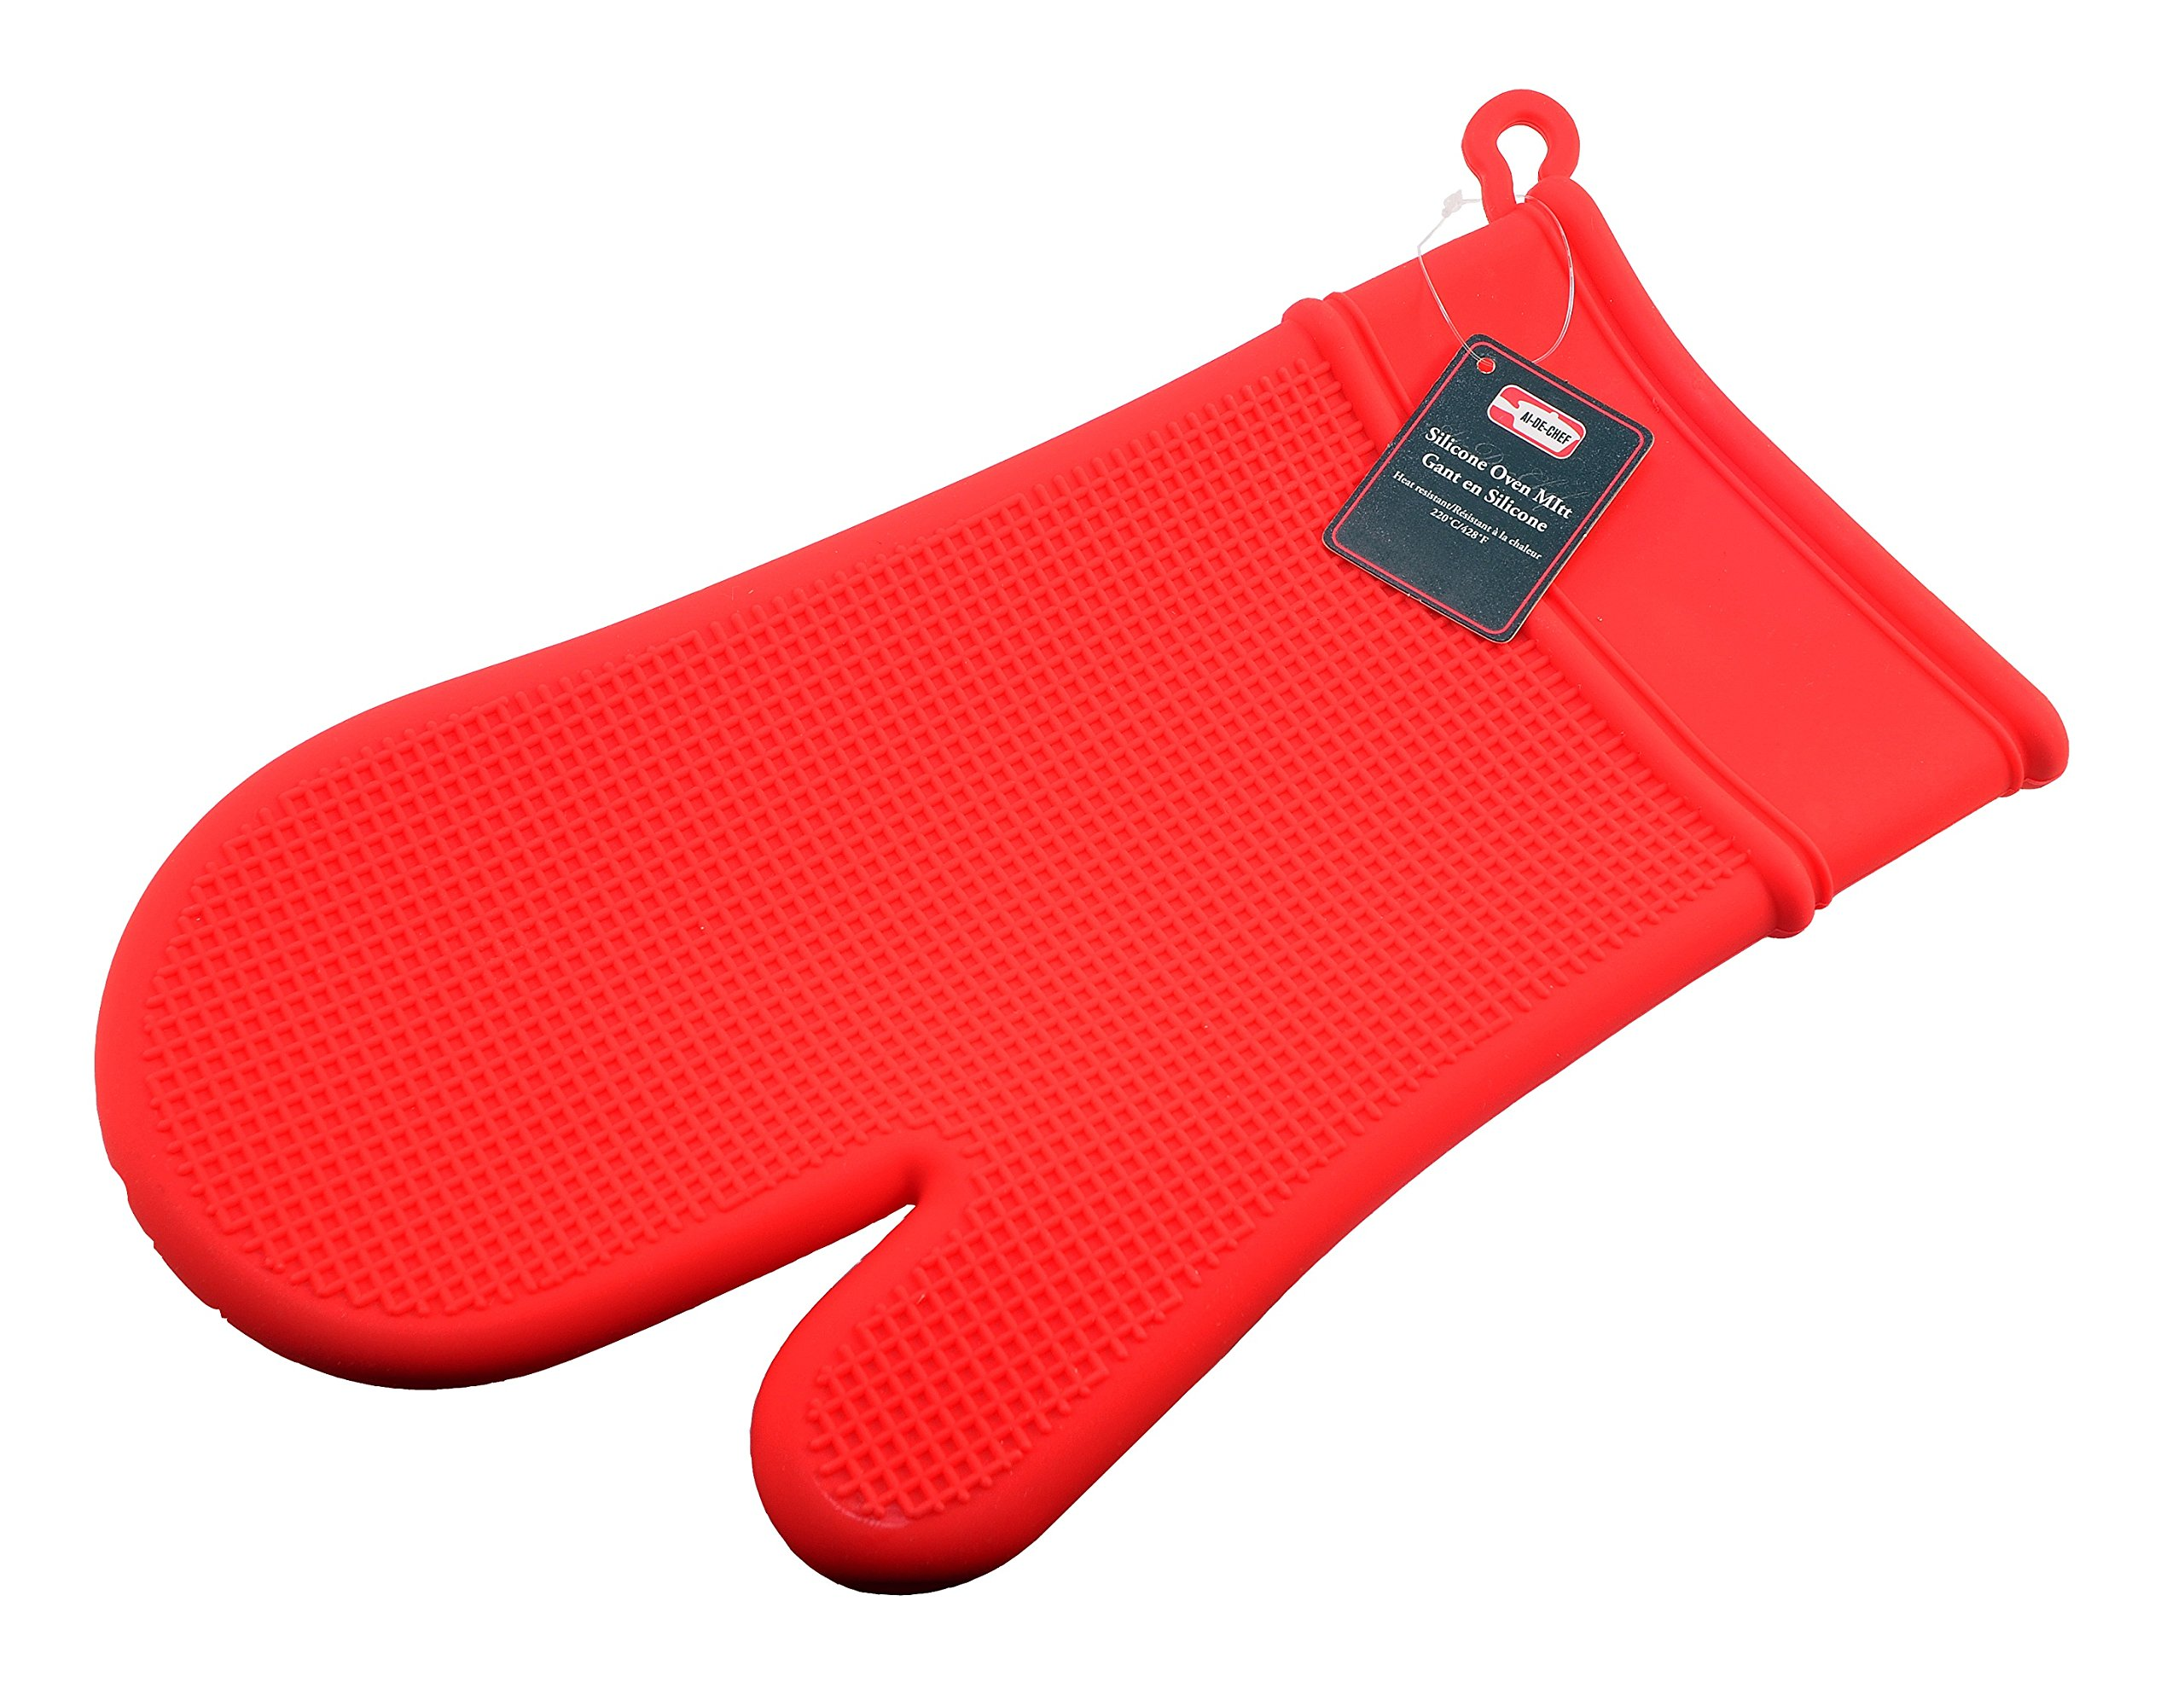 Red Silicone Oven Mitt - Heat Resistant up to 428ºF - Non-Slip Kitchen Oven Gloves for Cooking, Baking, Grilling - Dishwasher Safe. By Ai-De-Chef (1-Pack, Red)